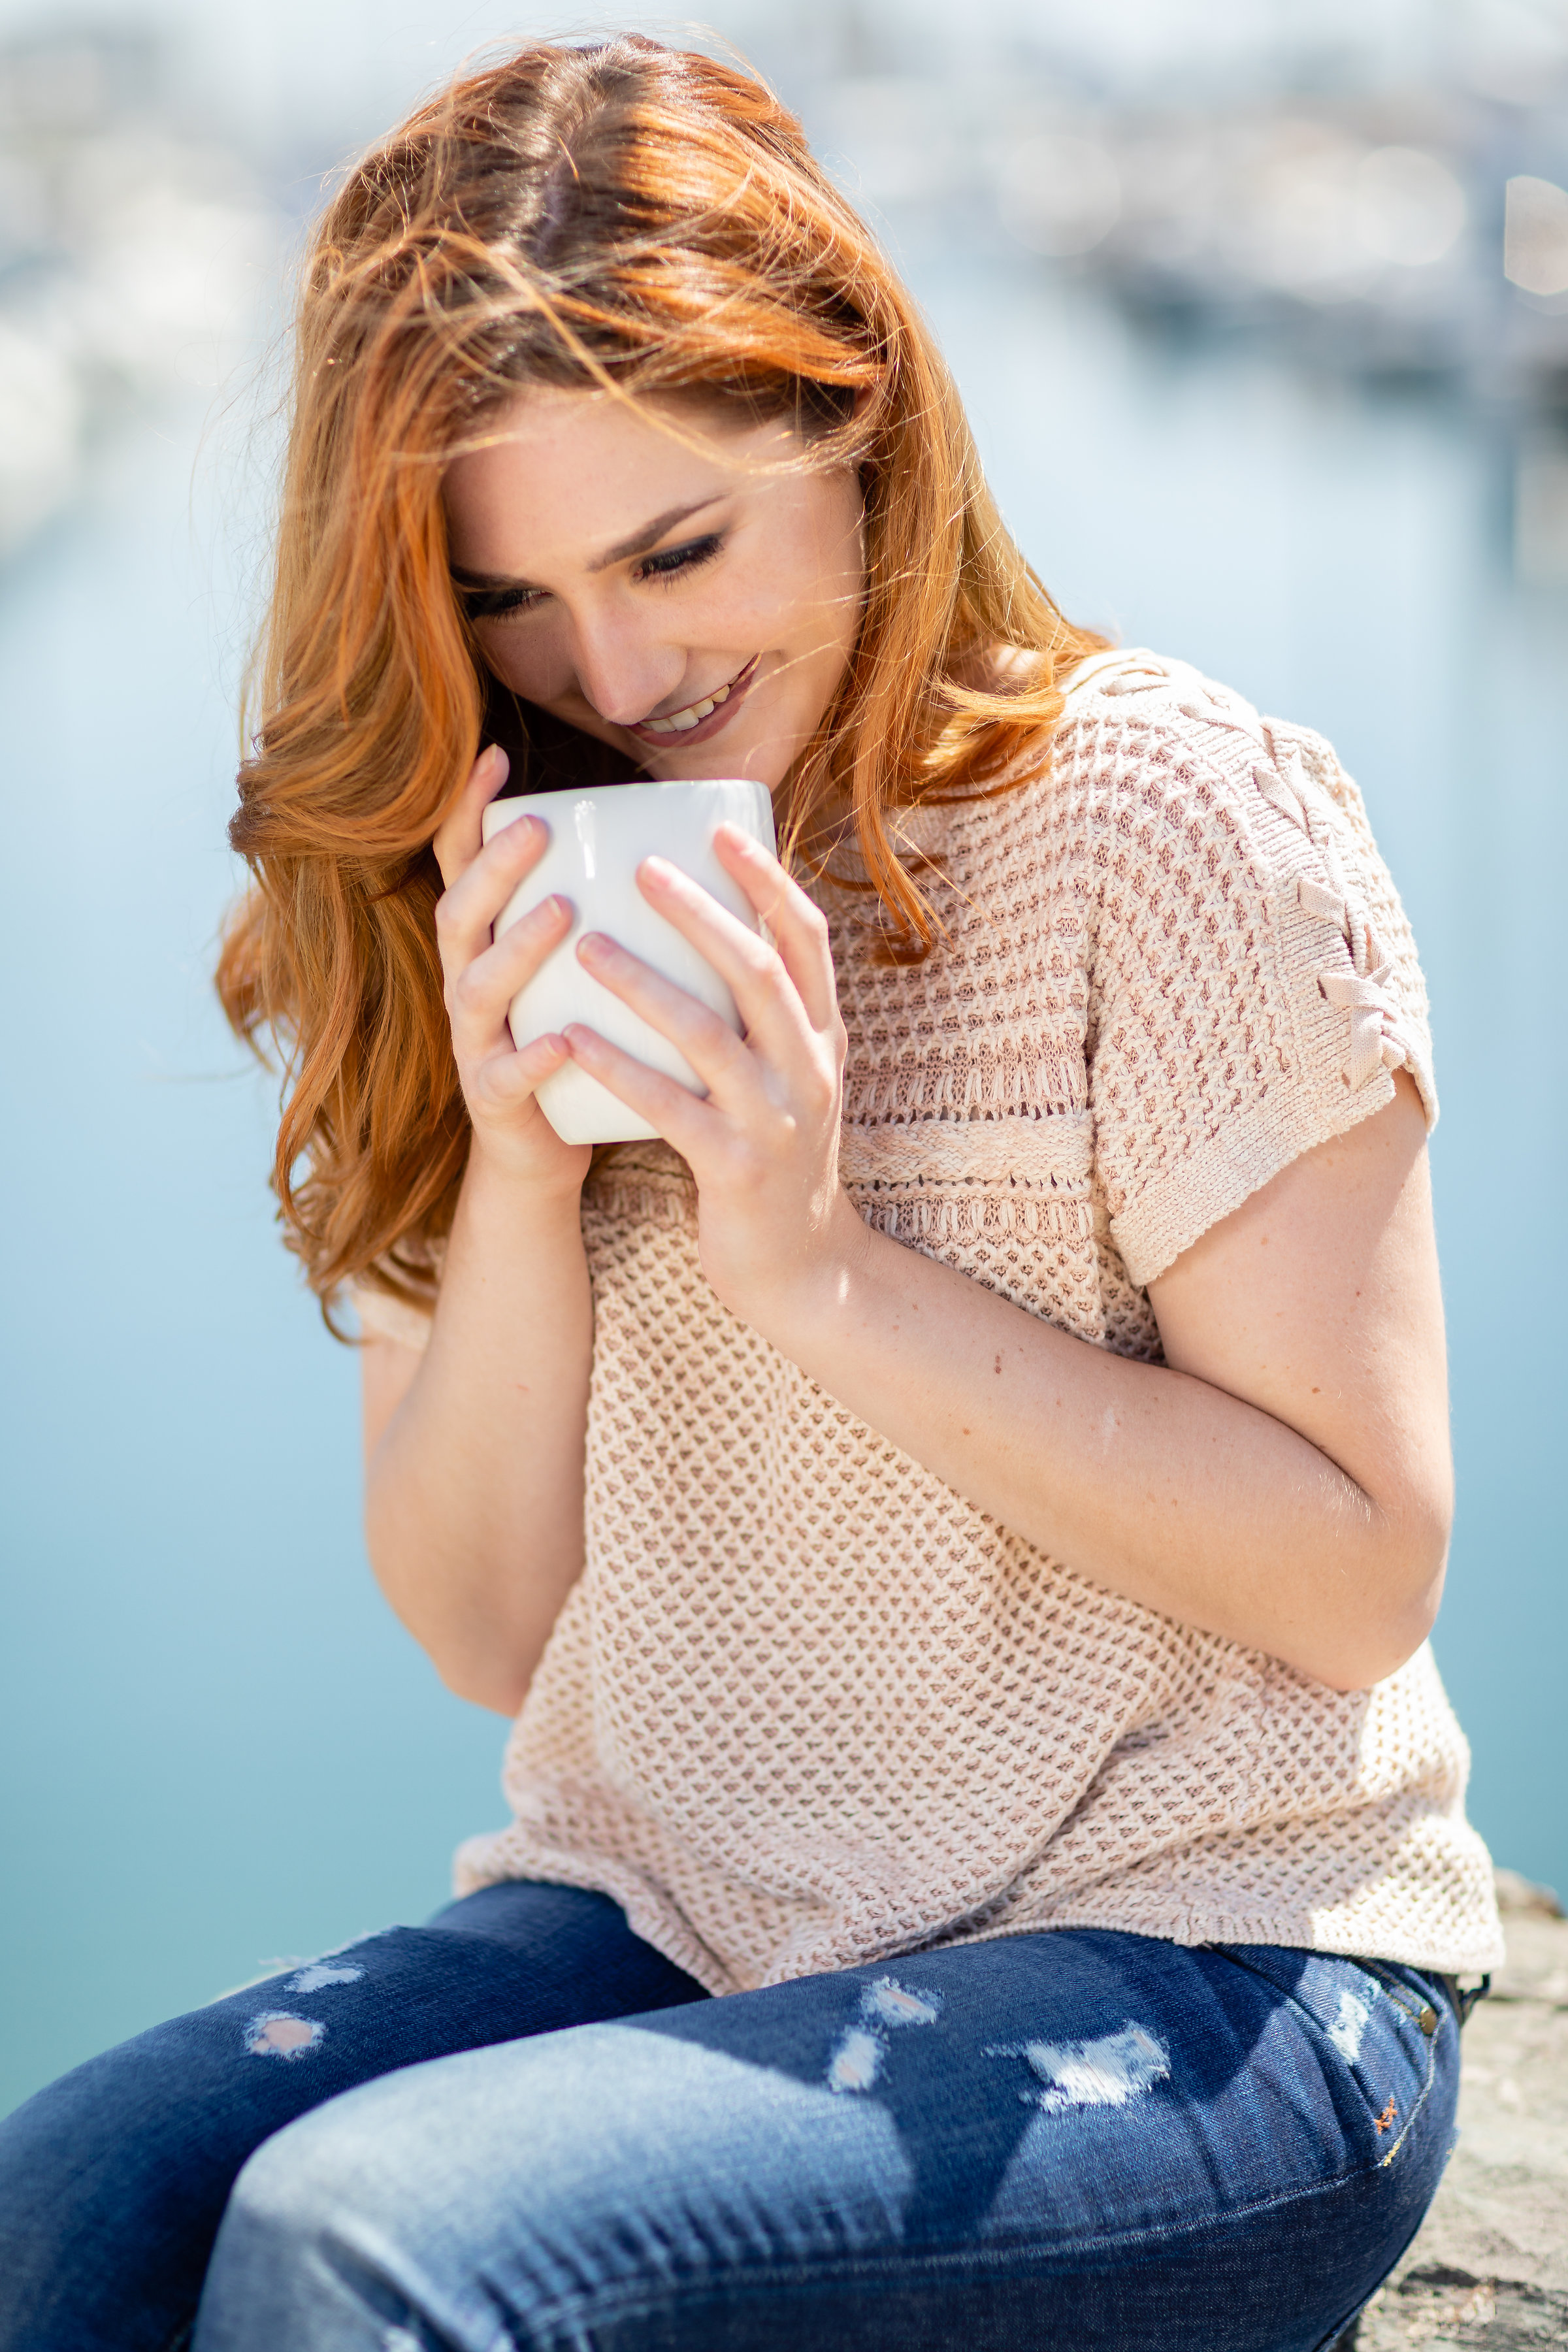 Woman smiling drinking coffee along the water.jpg